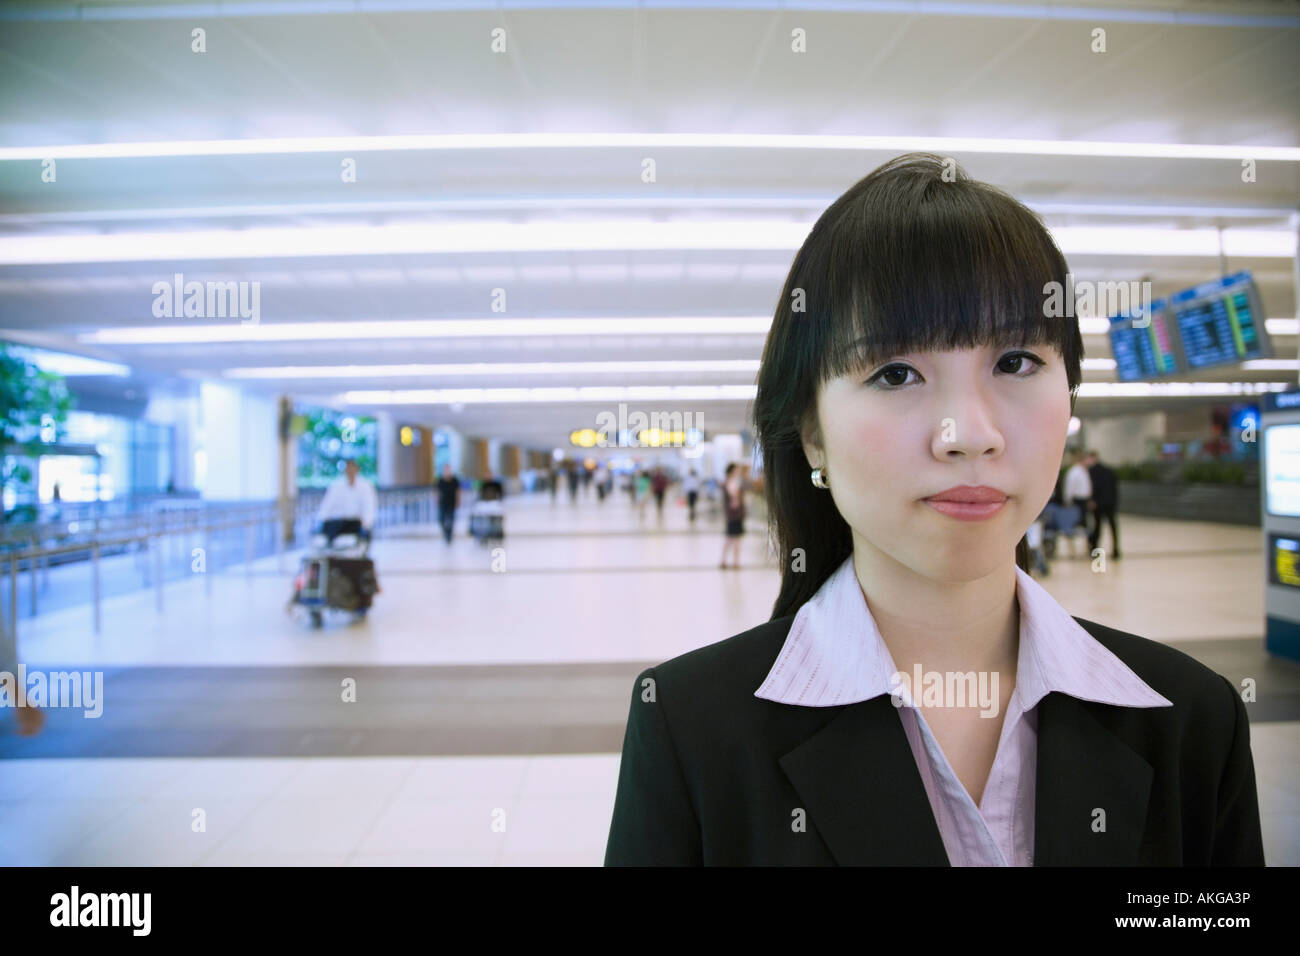 Portrait of a businesswoman at an airport Stock Photo